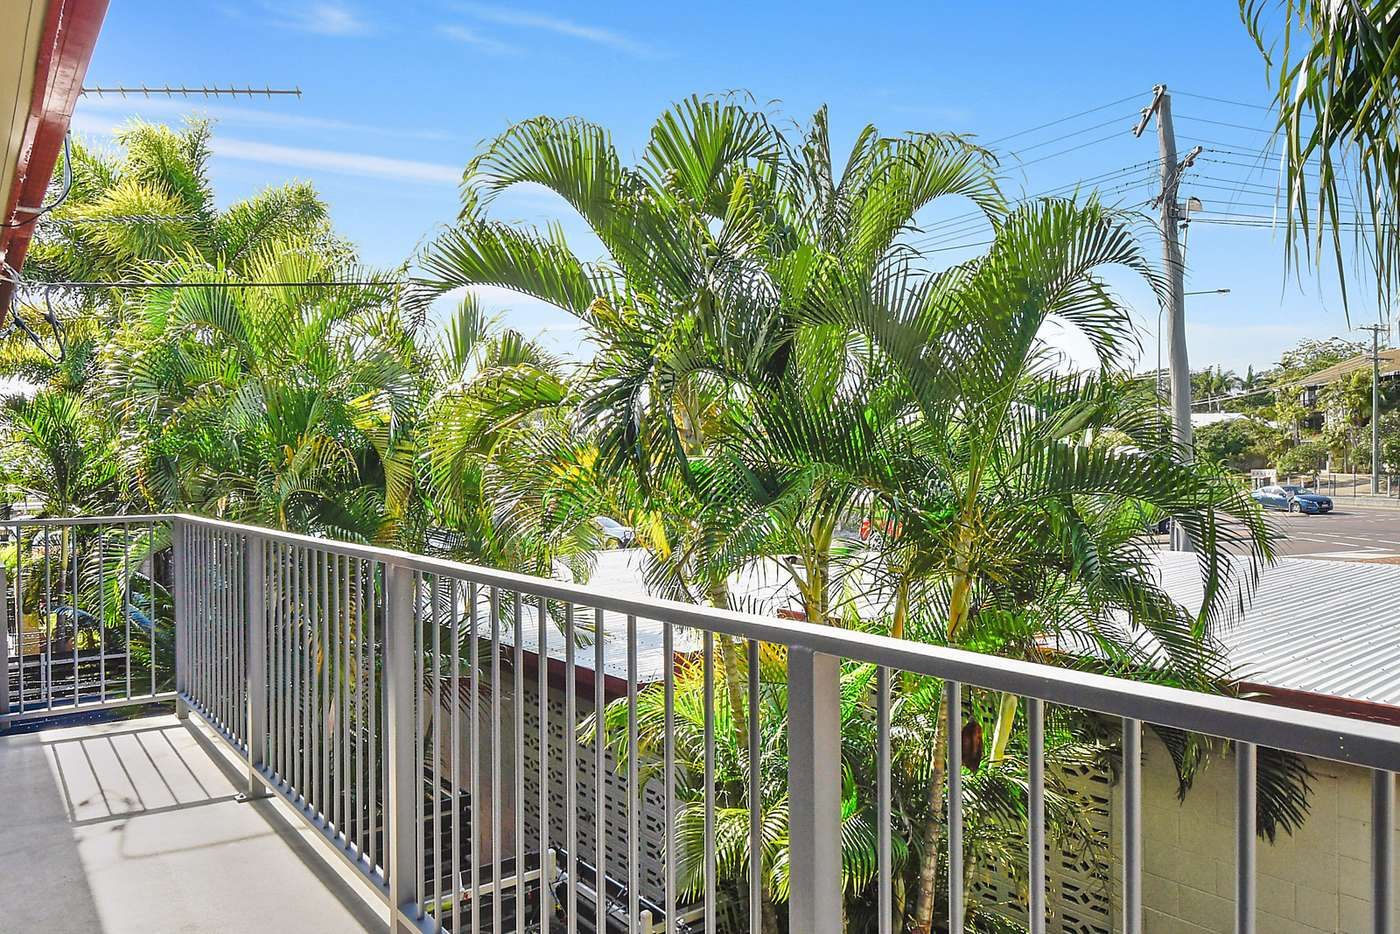 Main view of Homely unit listing, 8/2 Howitt Street, North Ward QLD 4810